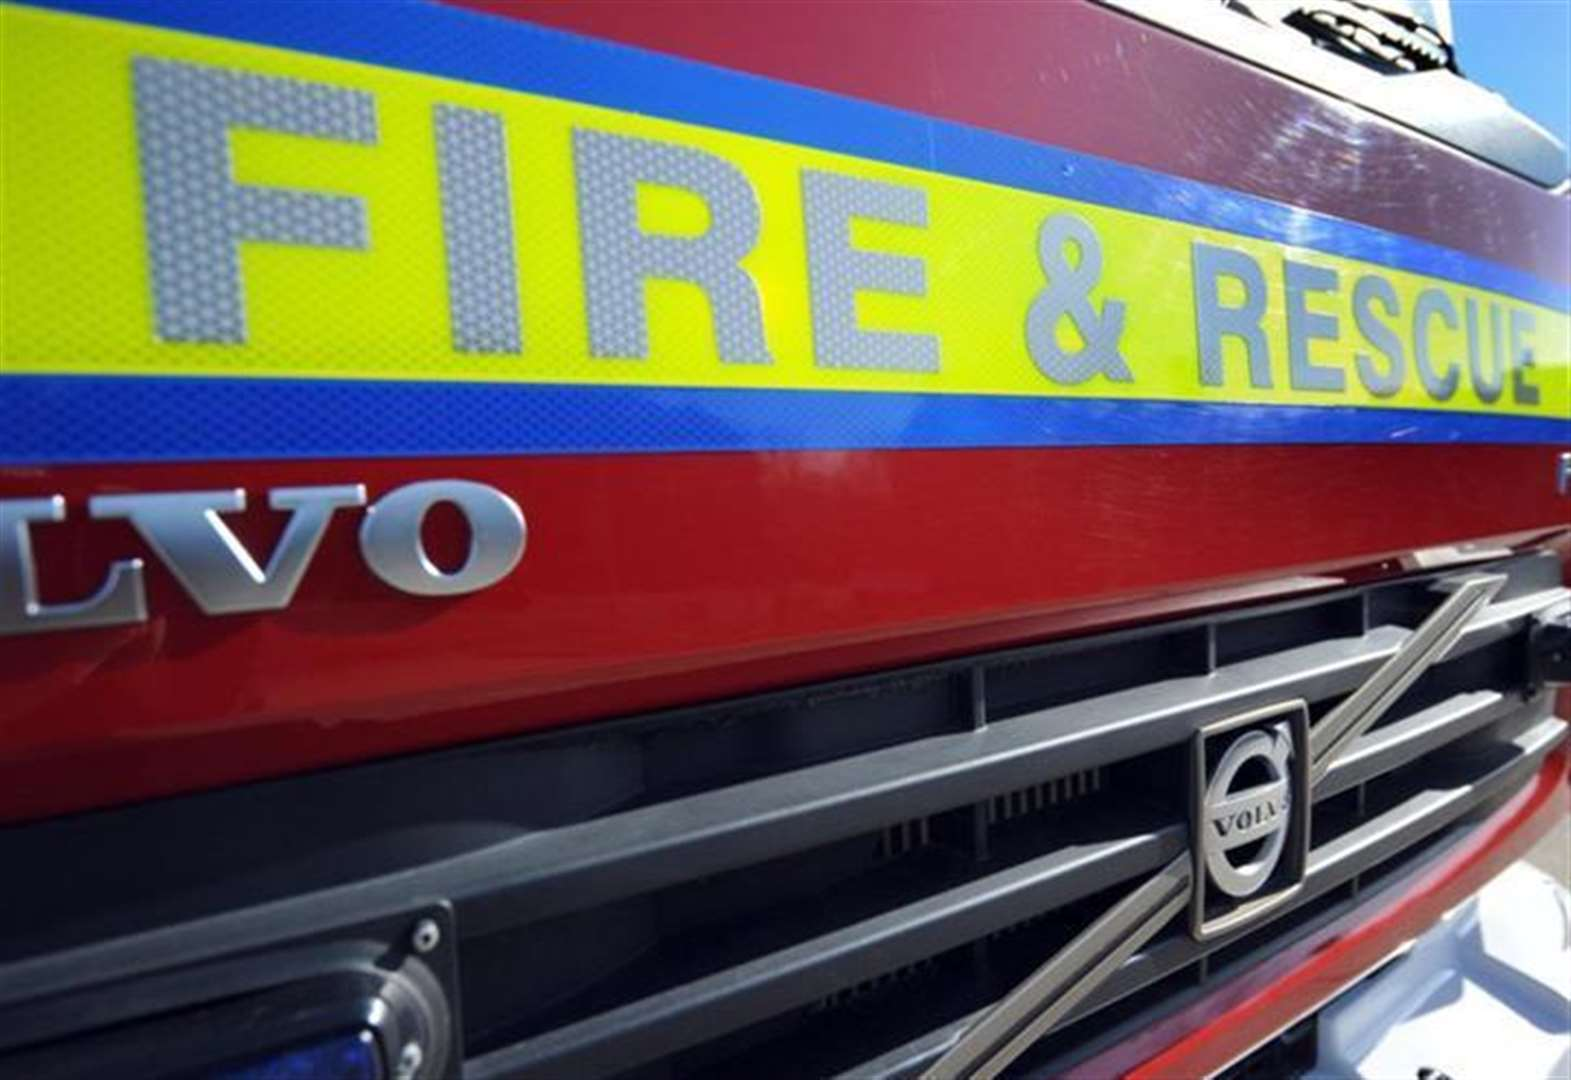 Homes left without power after garage blaze